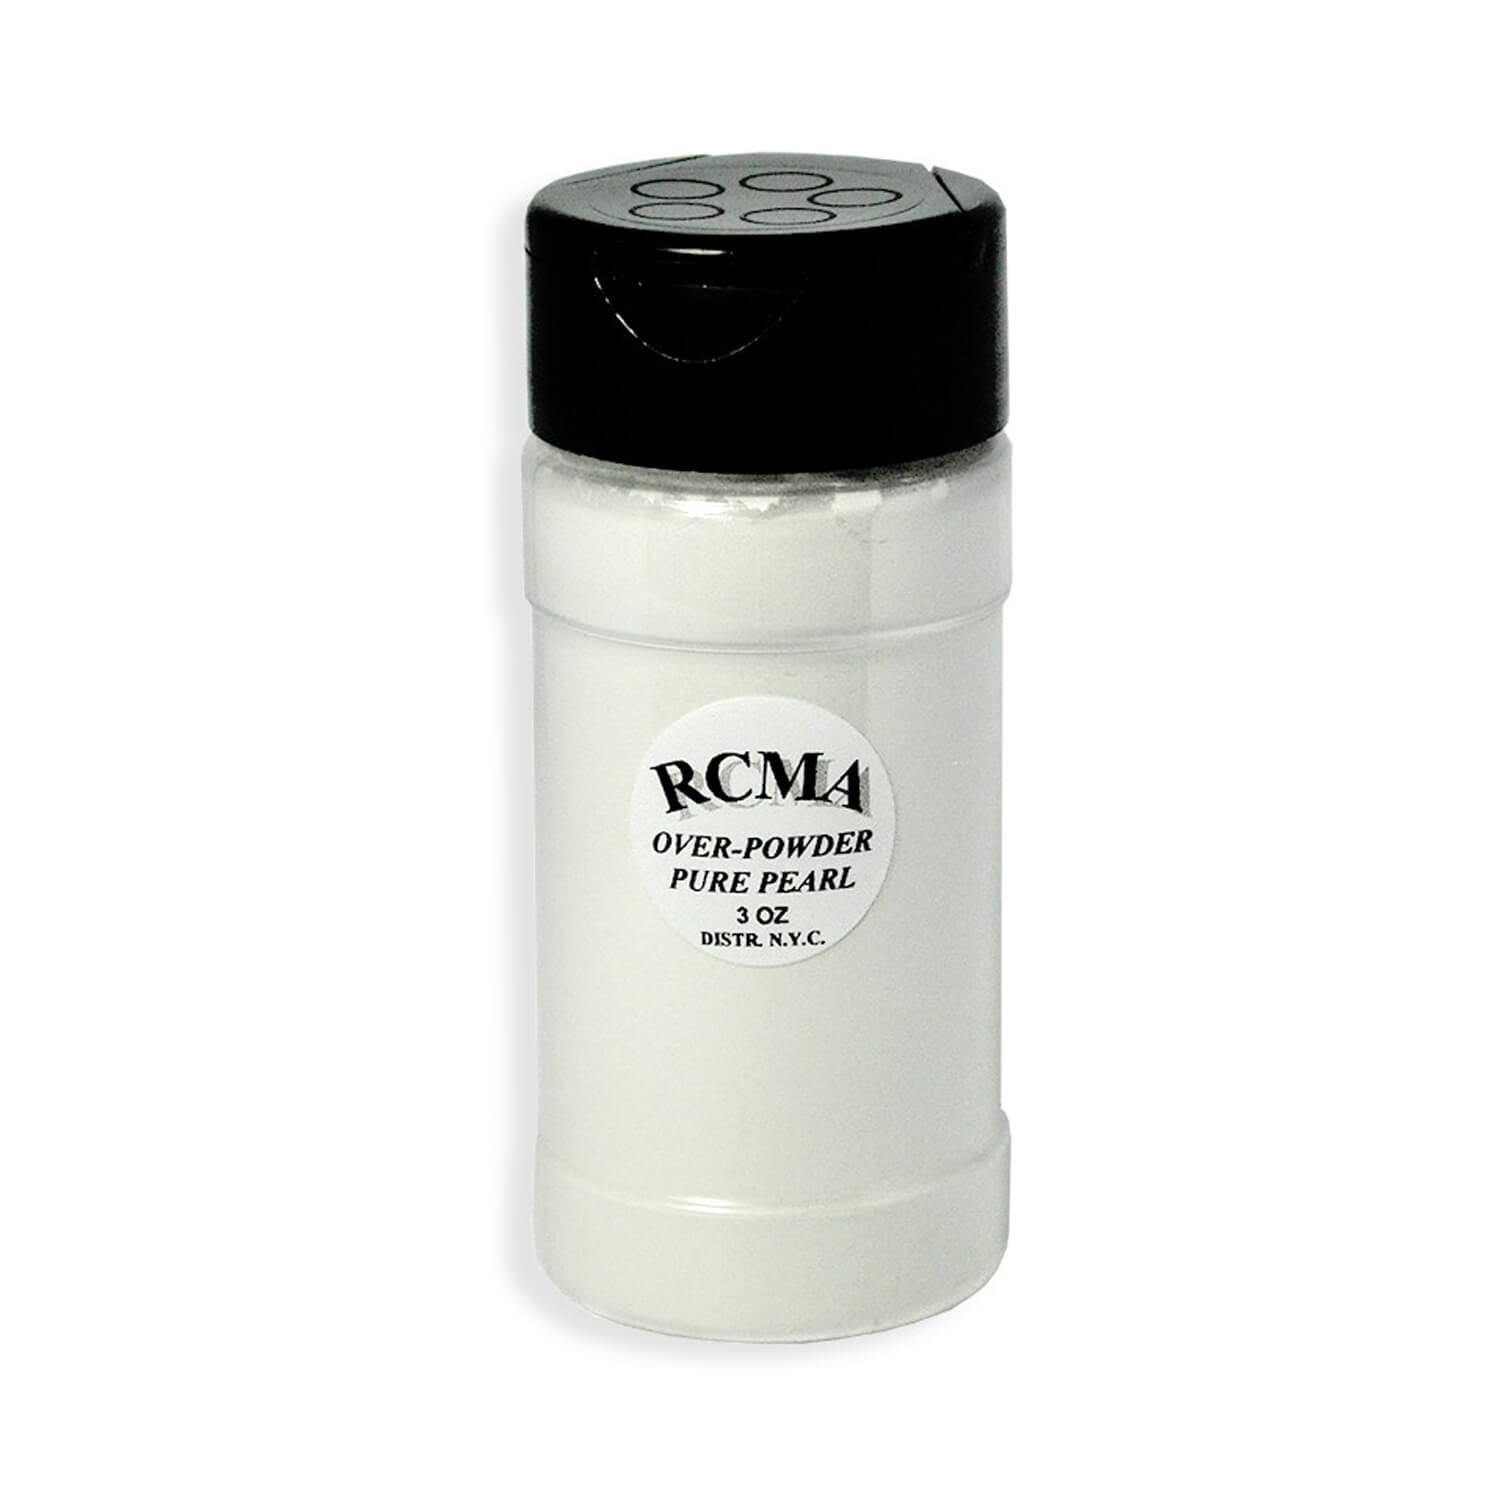 RCMA Over Powder Pure Pearl 3 oz